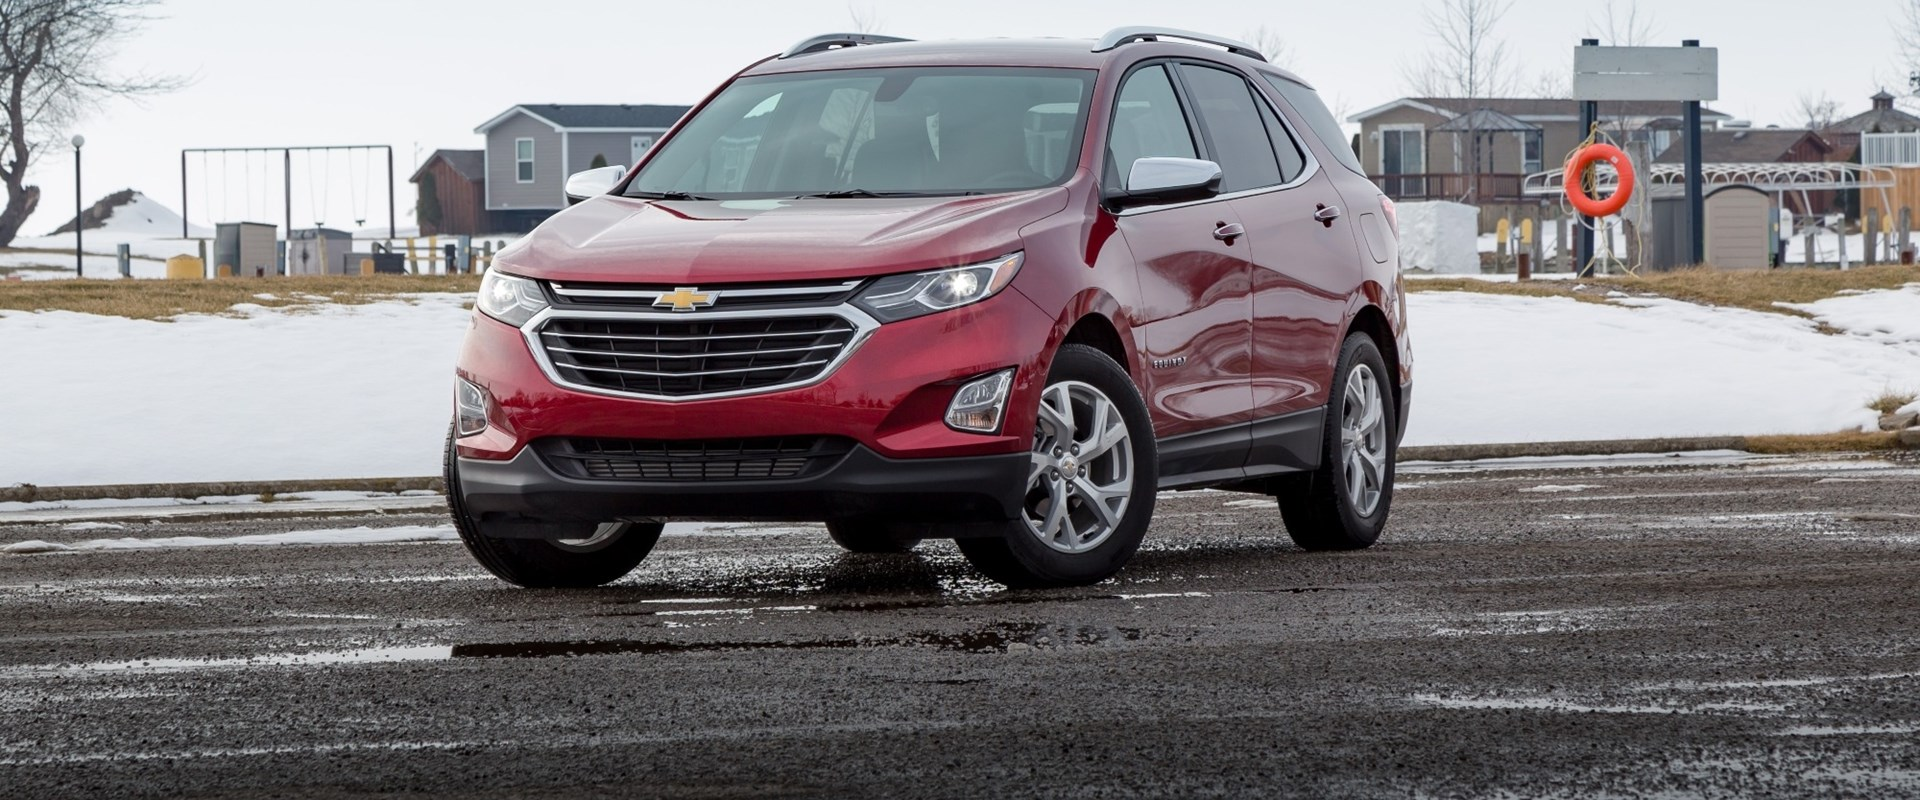 need know review to reviews everything chevrolet about interior article car equinox teendriver this you power price photo